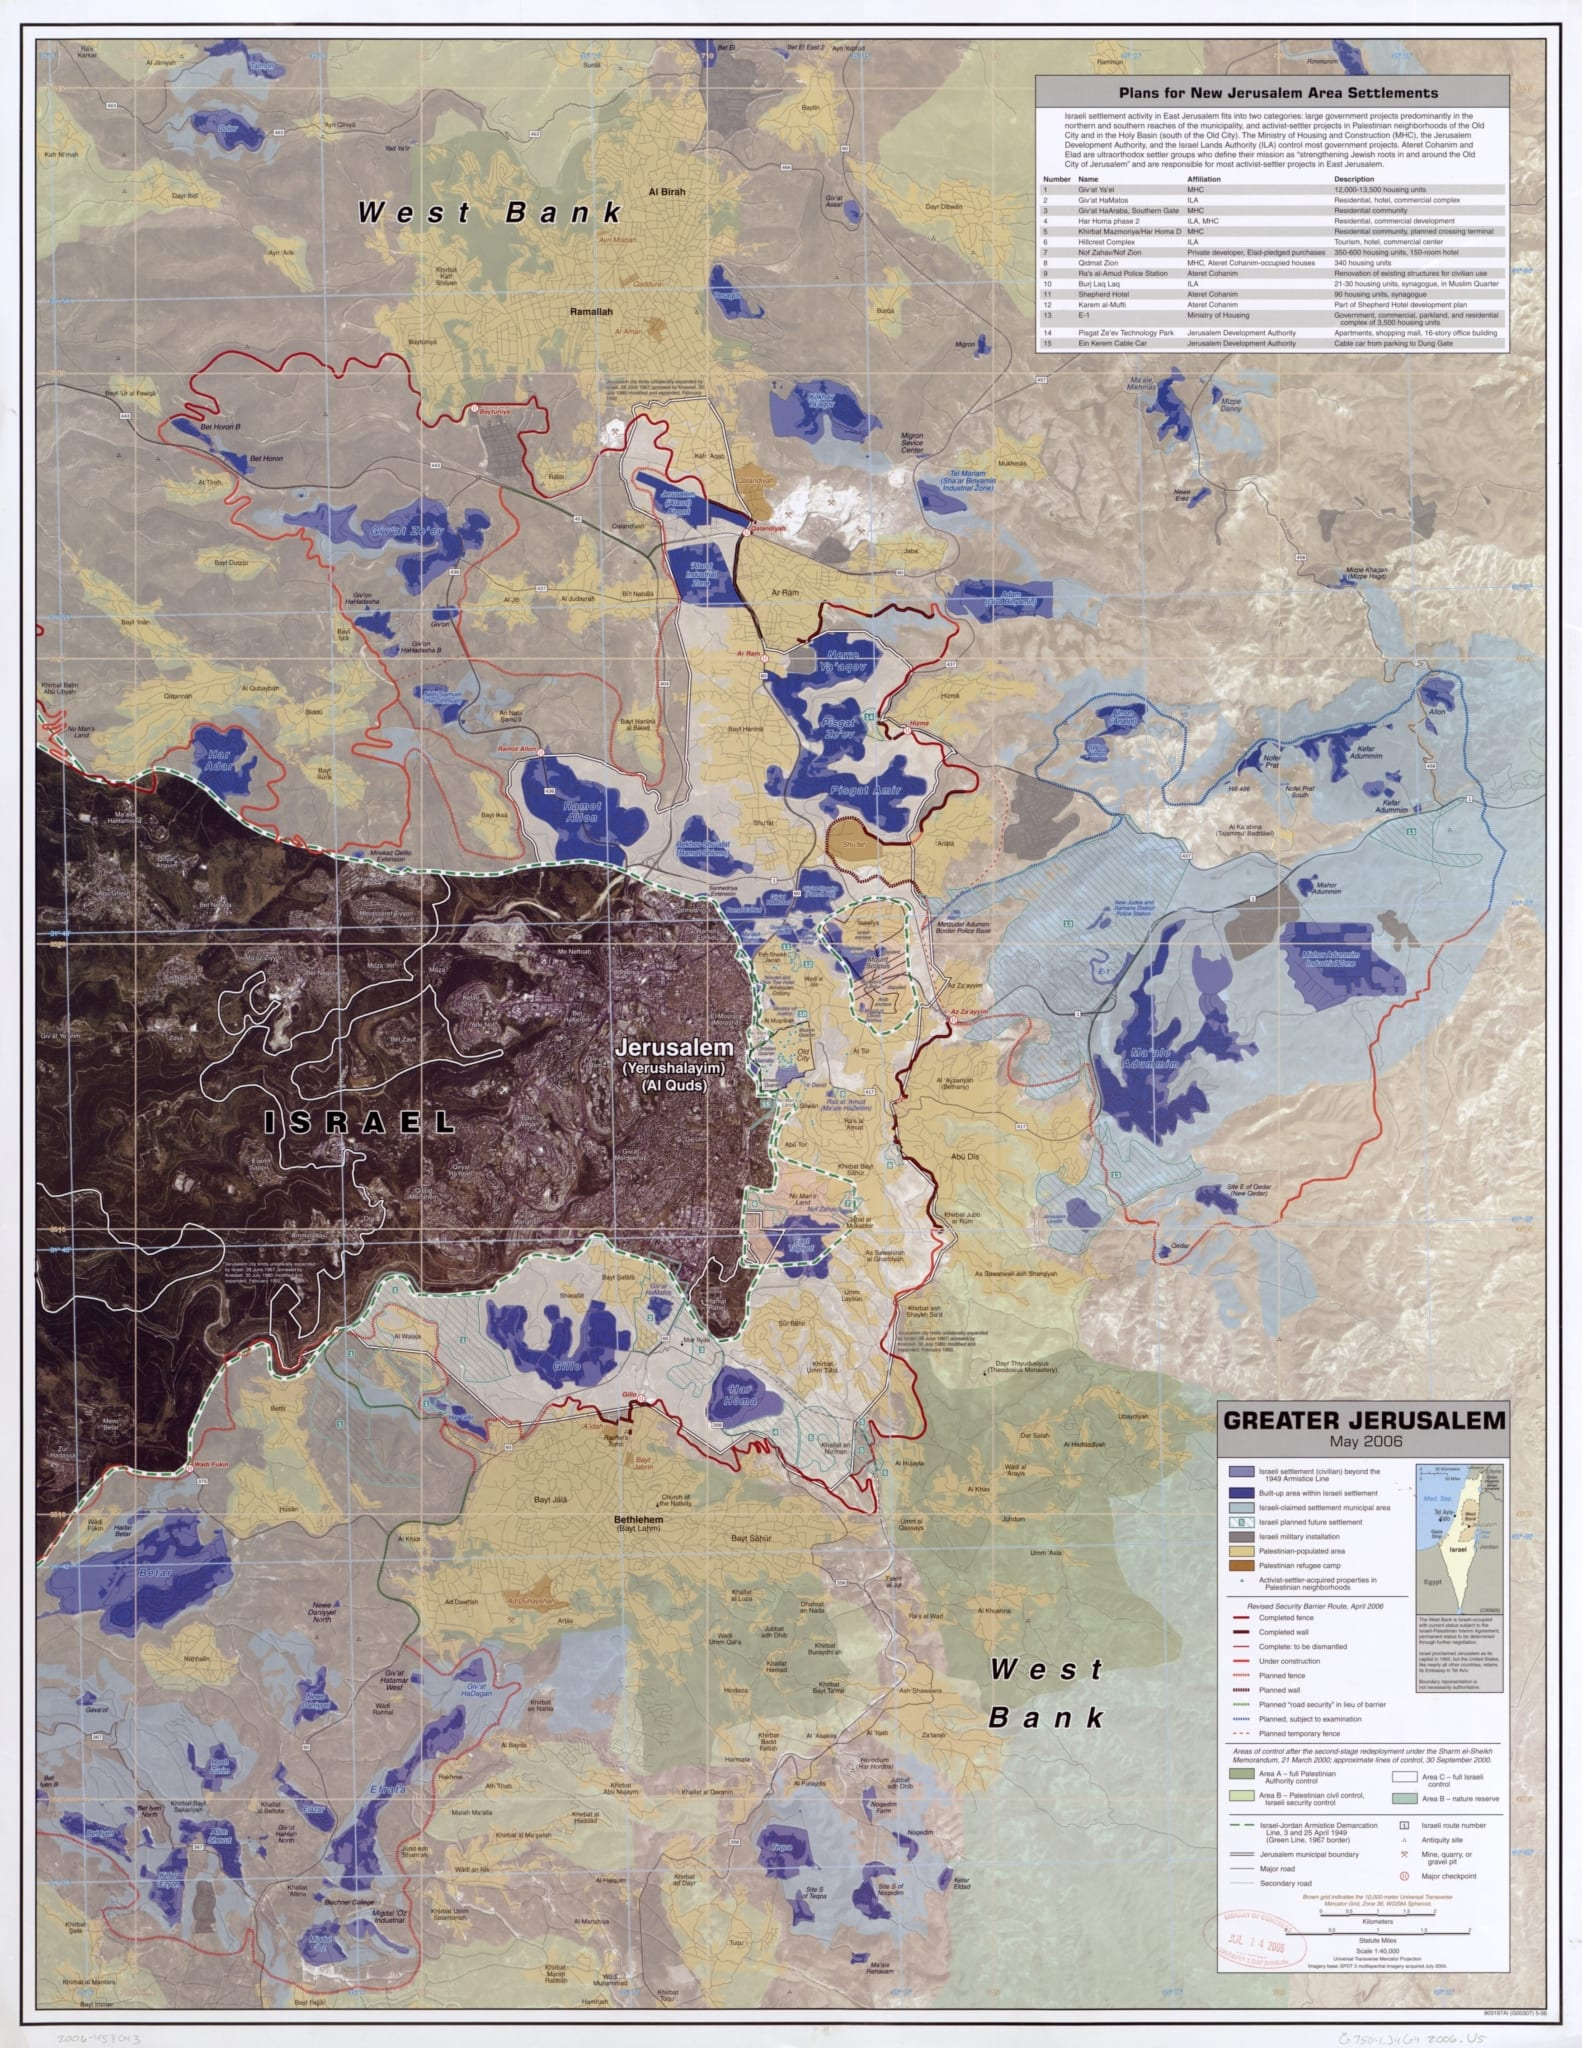 Image Map of Jerusalem [Source: Central Intelligence Agency, (2006)]